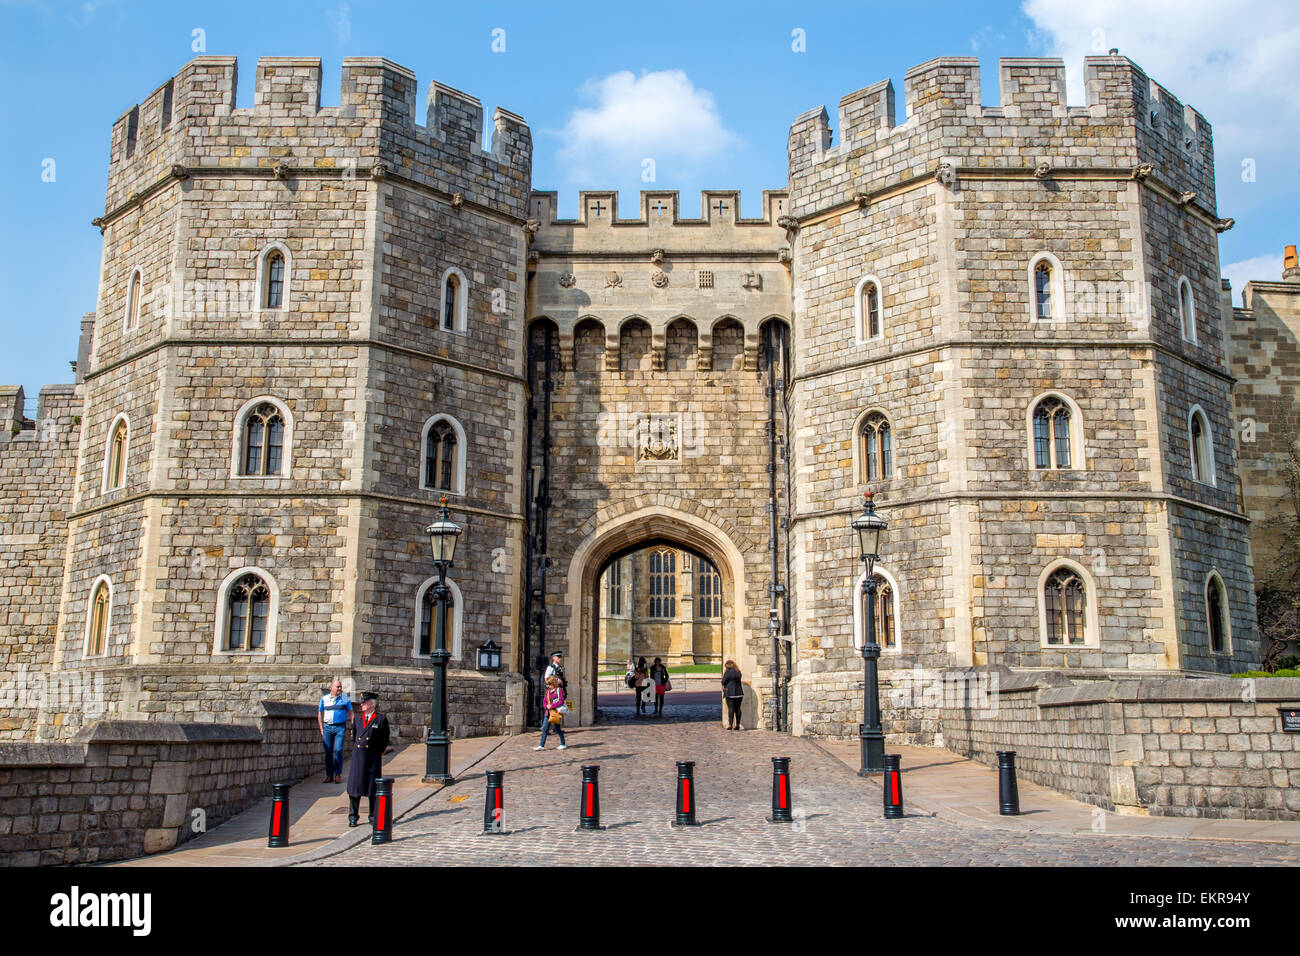 Henry VIII gateway of Windsor Castle, Windsor, England - Stock Image